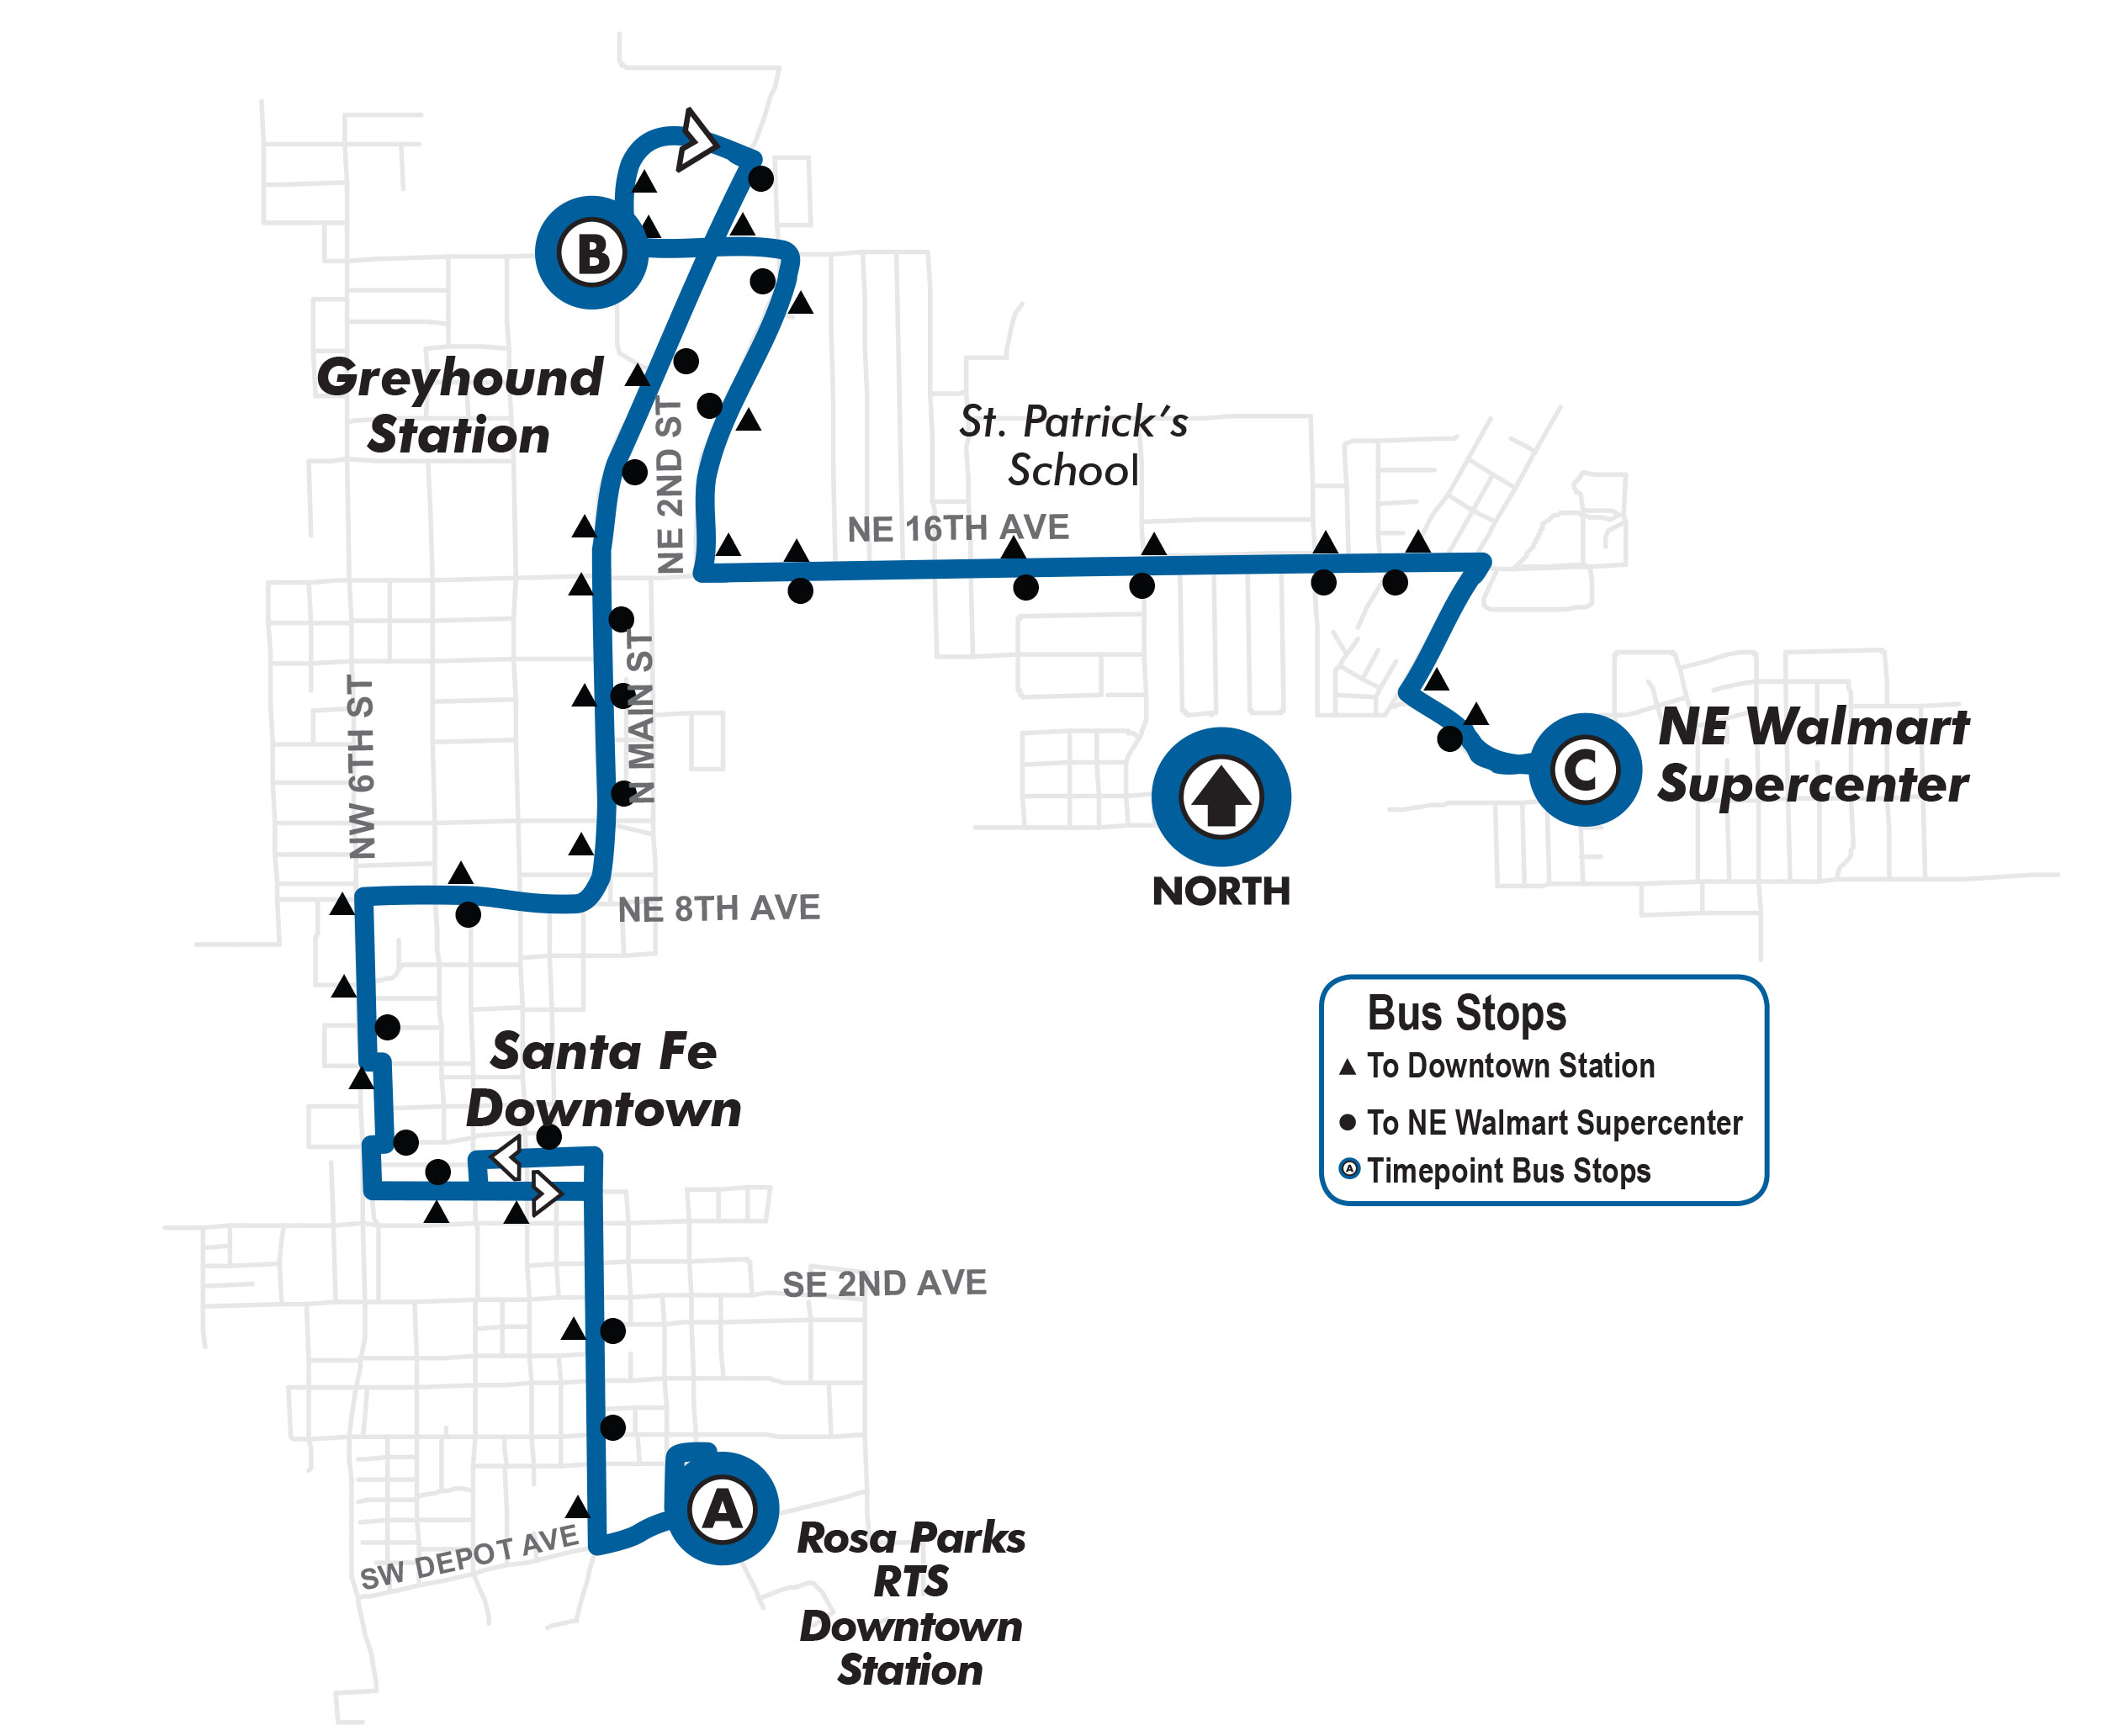 fall route rosa parks rts downtown station to ne walmart fall route27 rosa parks rts downtown station to ne walmart supercenter go rts